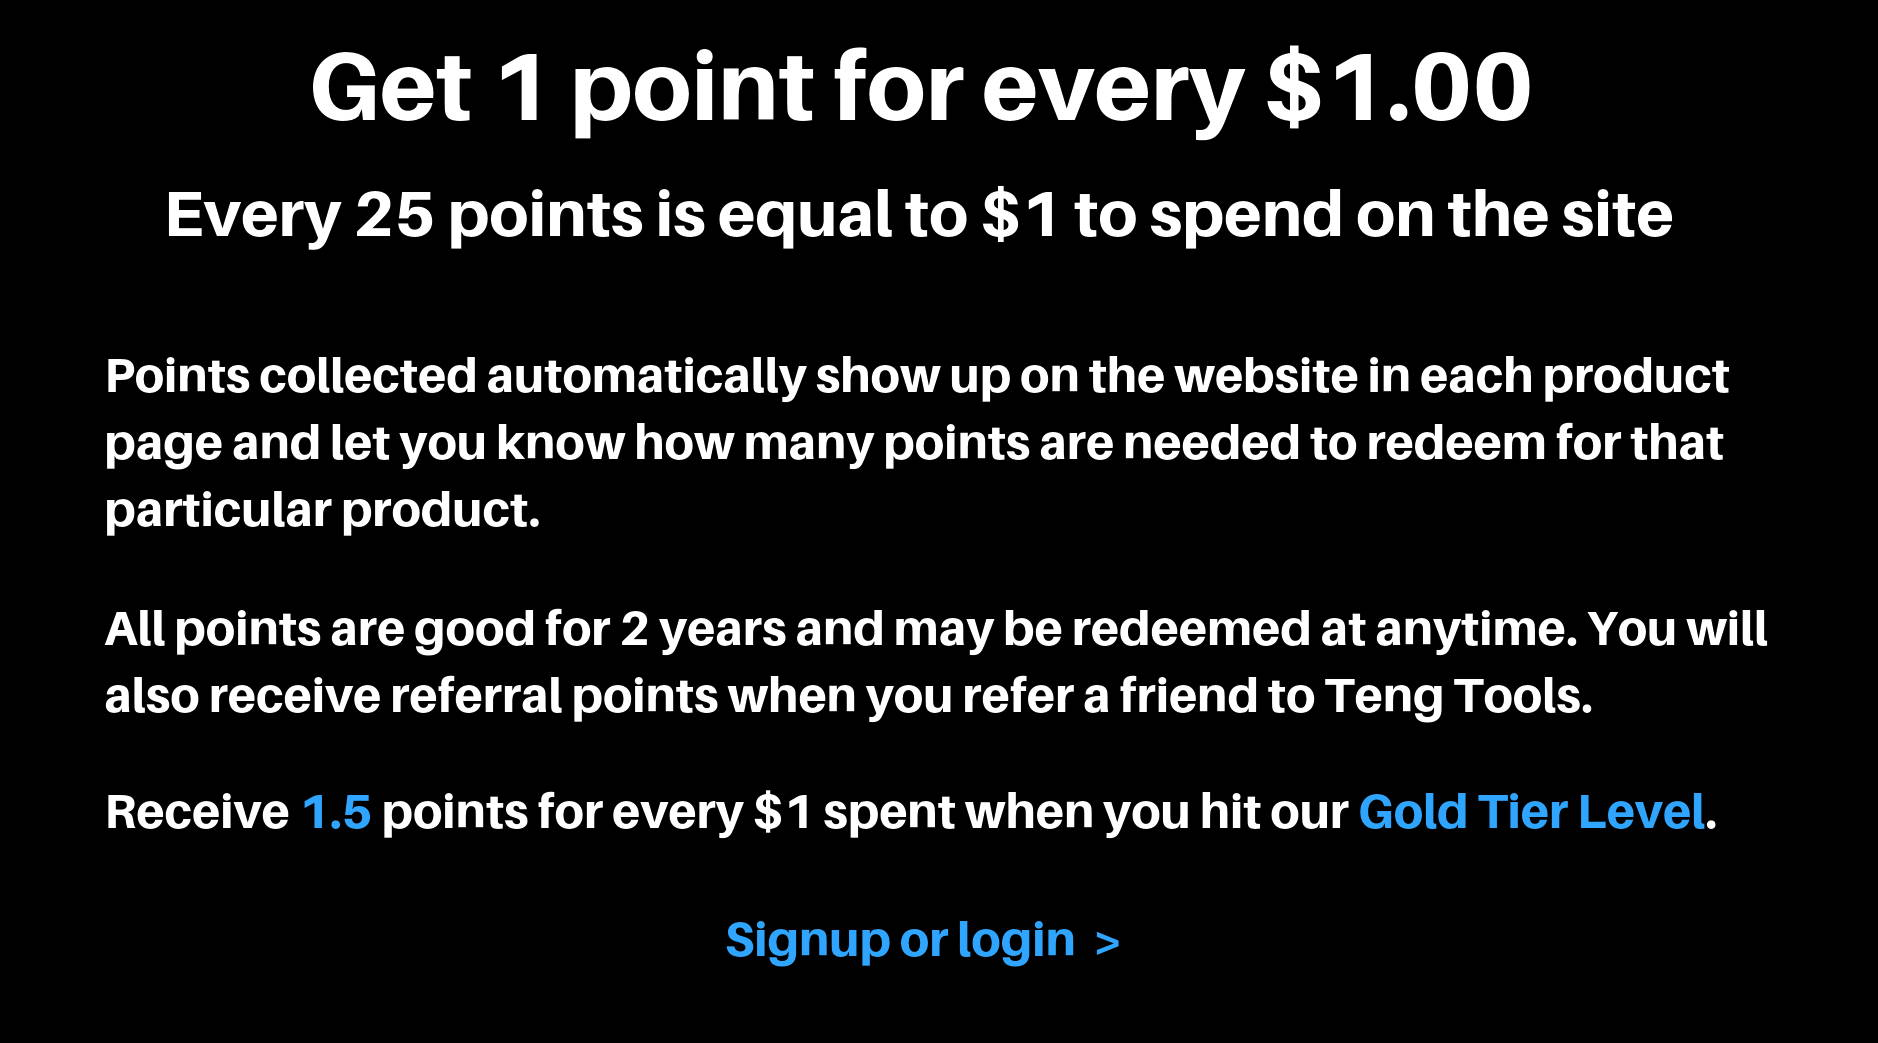 Get 1 point for every $1.00. Every 25 points is equal to $1 to spend on the site. points collected automatically show up on the website in each product page and let you know how many points are needed to redeem for that particular product. All points are good for 2 years and may be redeemed at anytime. You will also receive referral points when you refer a friend to Teng Tools. Receive 1.5 points for every $1 spent when you hit our Gold Tier Level. Signup or login.